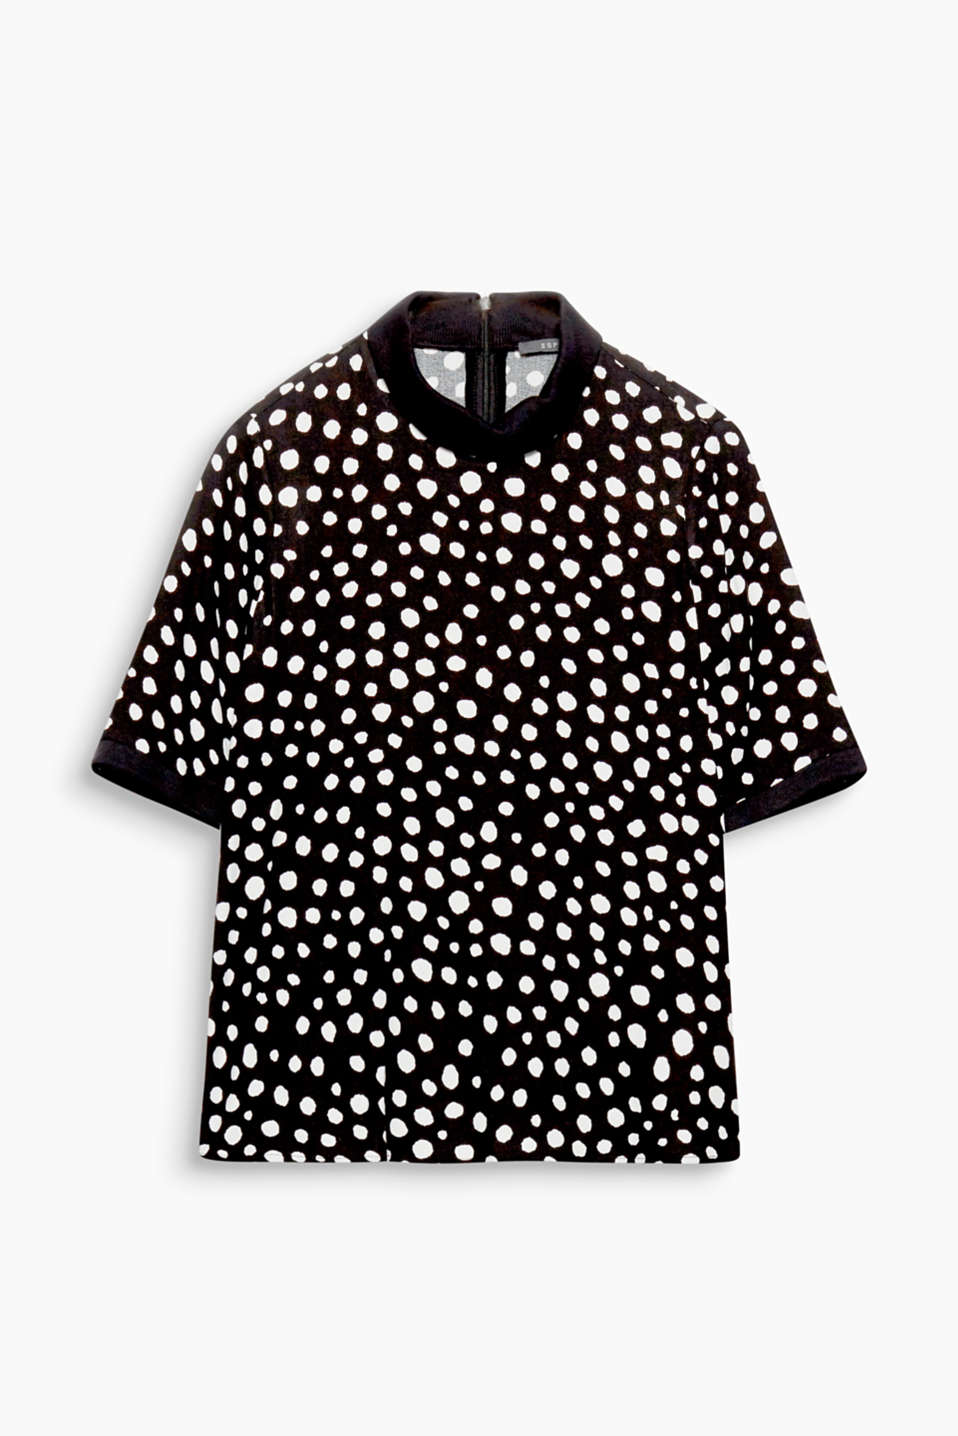 Can be styled smartly or casually: this straight cut blouse with a polka dot print, polo neck and jersey cuffs!